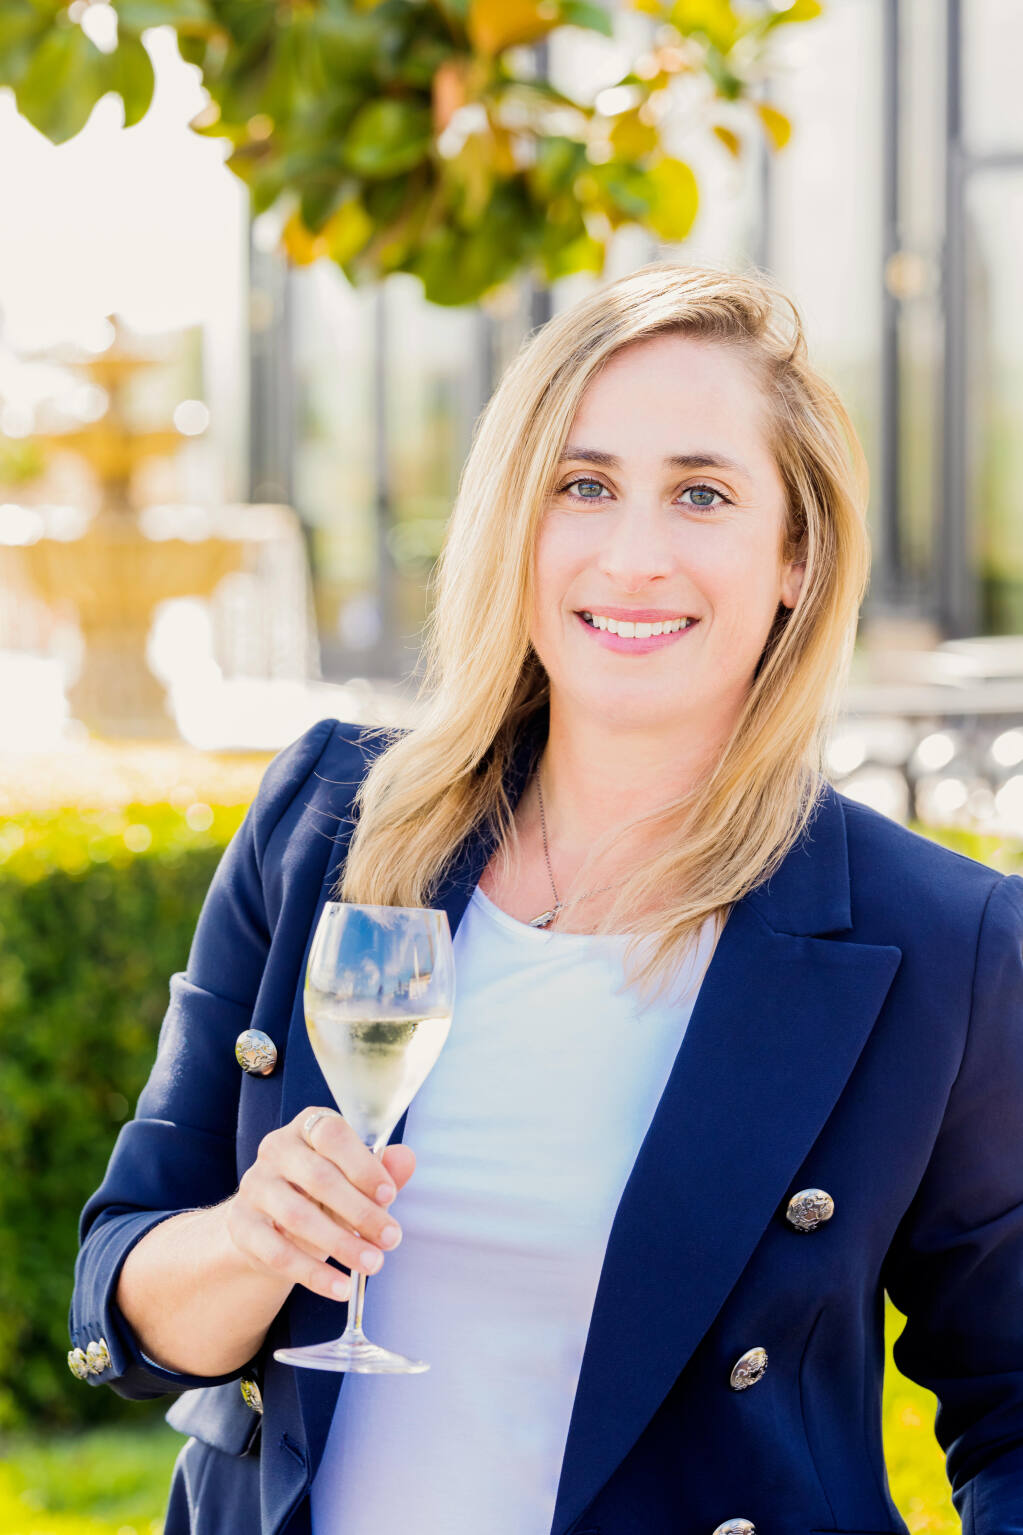 Remi Cohen is the CEO of Napa's Domaine Carneros. If you want to break through the glass ceiling in the wine industry, Cohen has this advice: Know your worth.